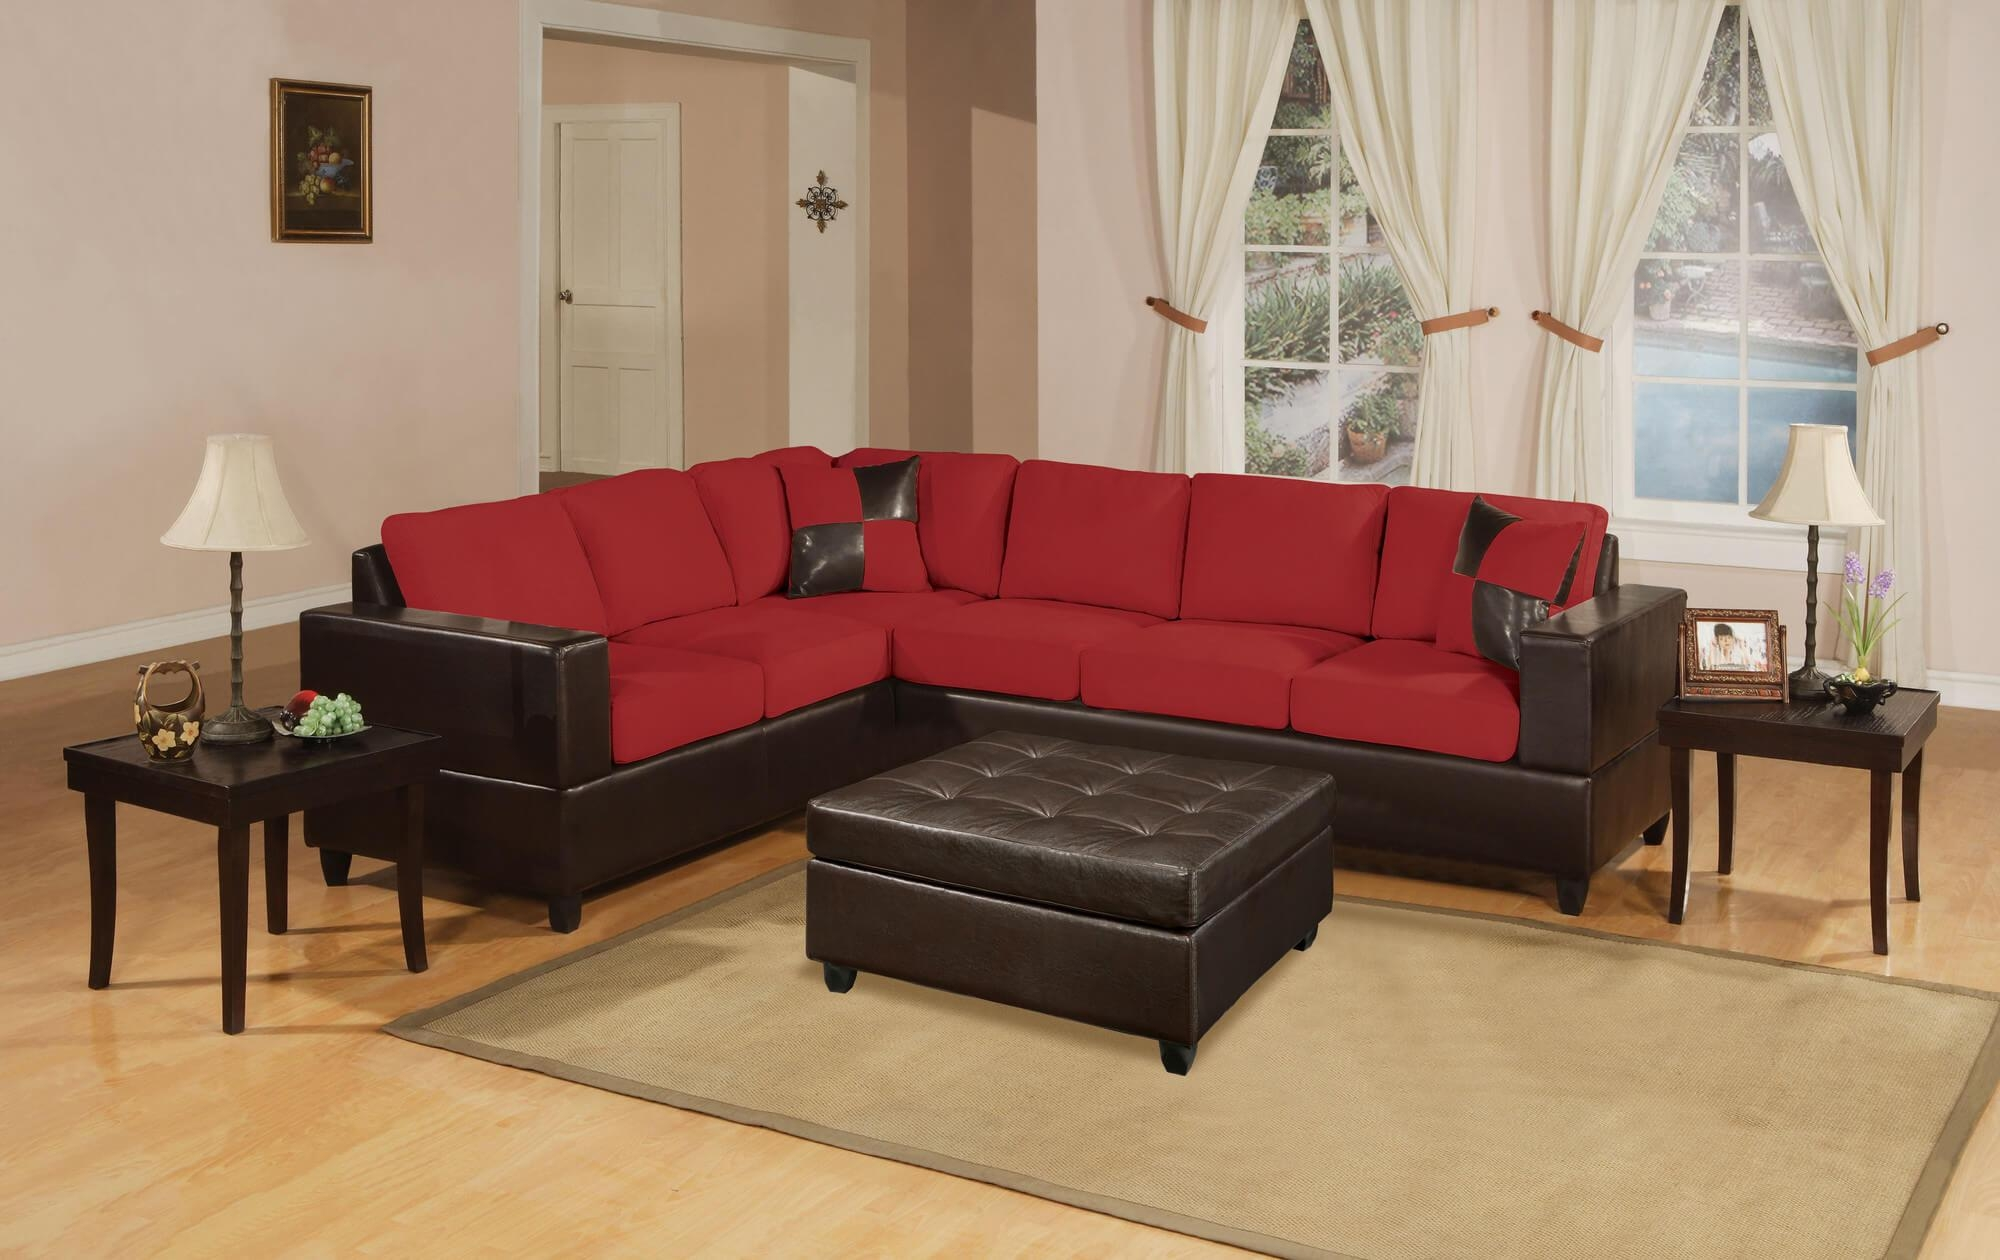 Furniture: Comfortable Deep Seat Sectional For Your Living Room Intended For Deep Seat Leather Sectional (View 12 of 15)